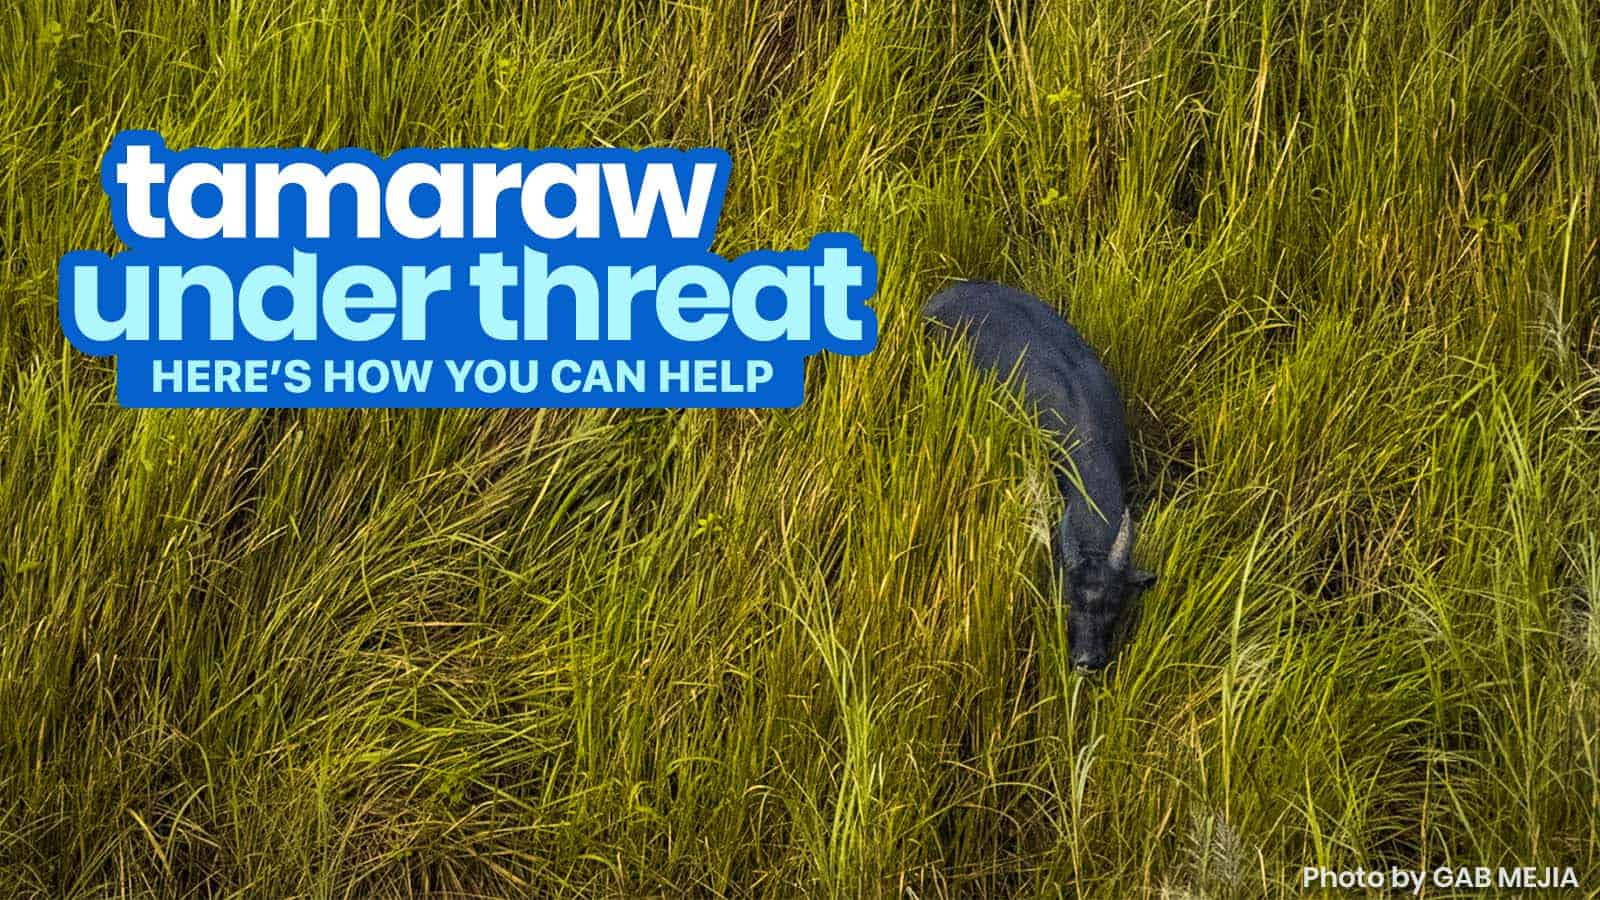 THE TAMARAW IS UNDER THREAT: Here's How We Can Help Save Them